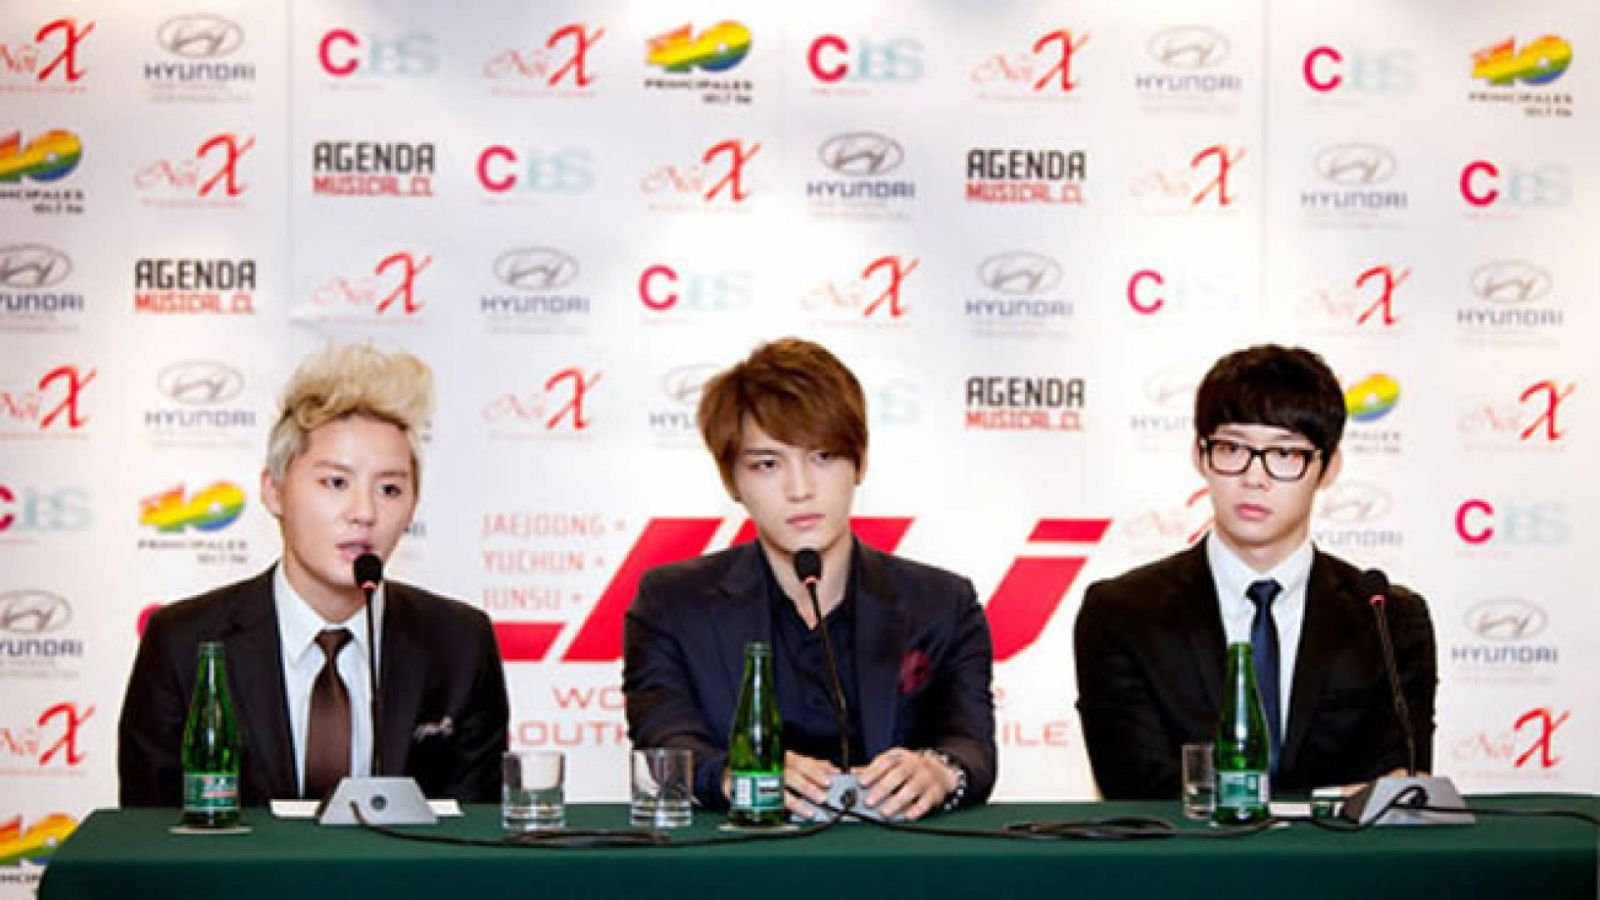 Rueda de prensa de JYJ en Chile © C-JeS Entertainment